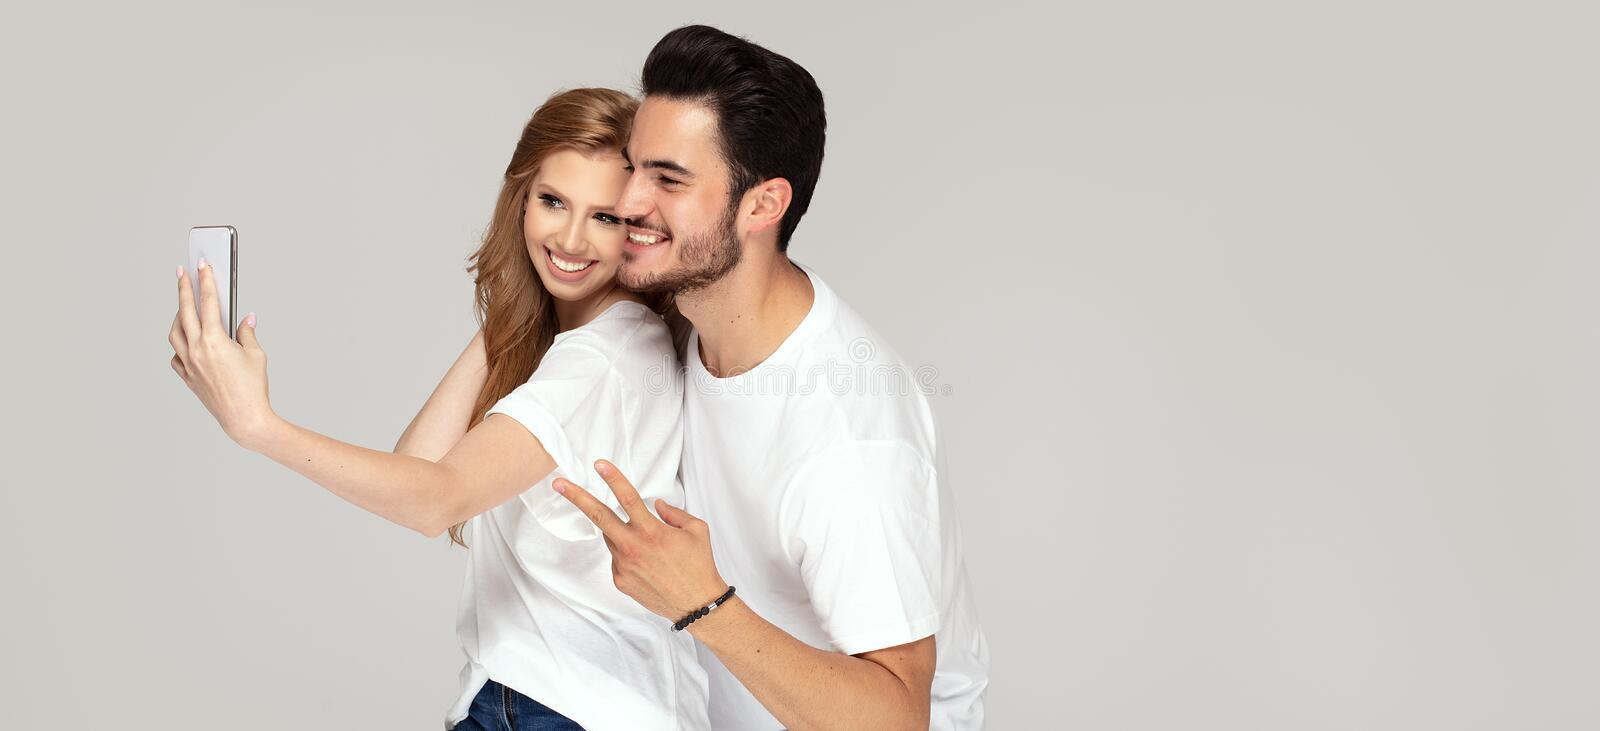 Happy couple taking selfie by mobile phone. Happy young couple looking at camera of mobile phone, making selfie portrait, wearing white t shirts and jeans royalty free stock photography